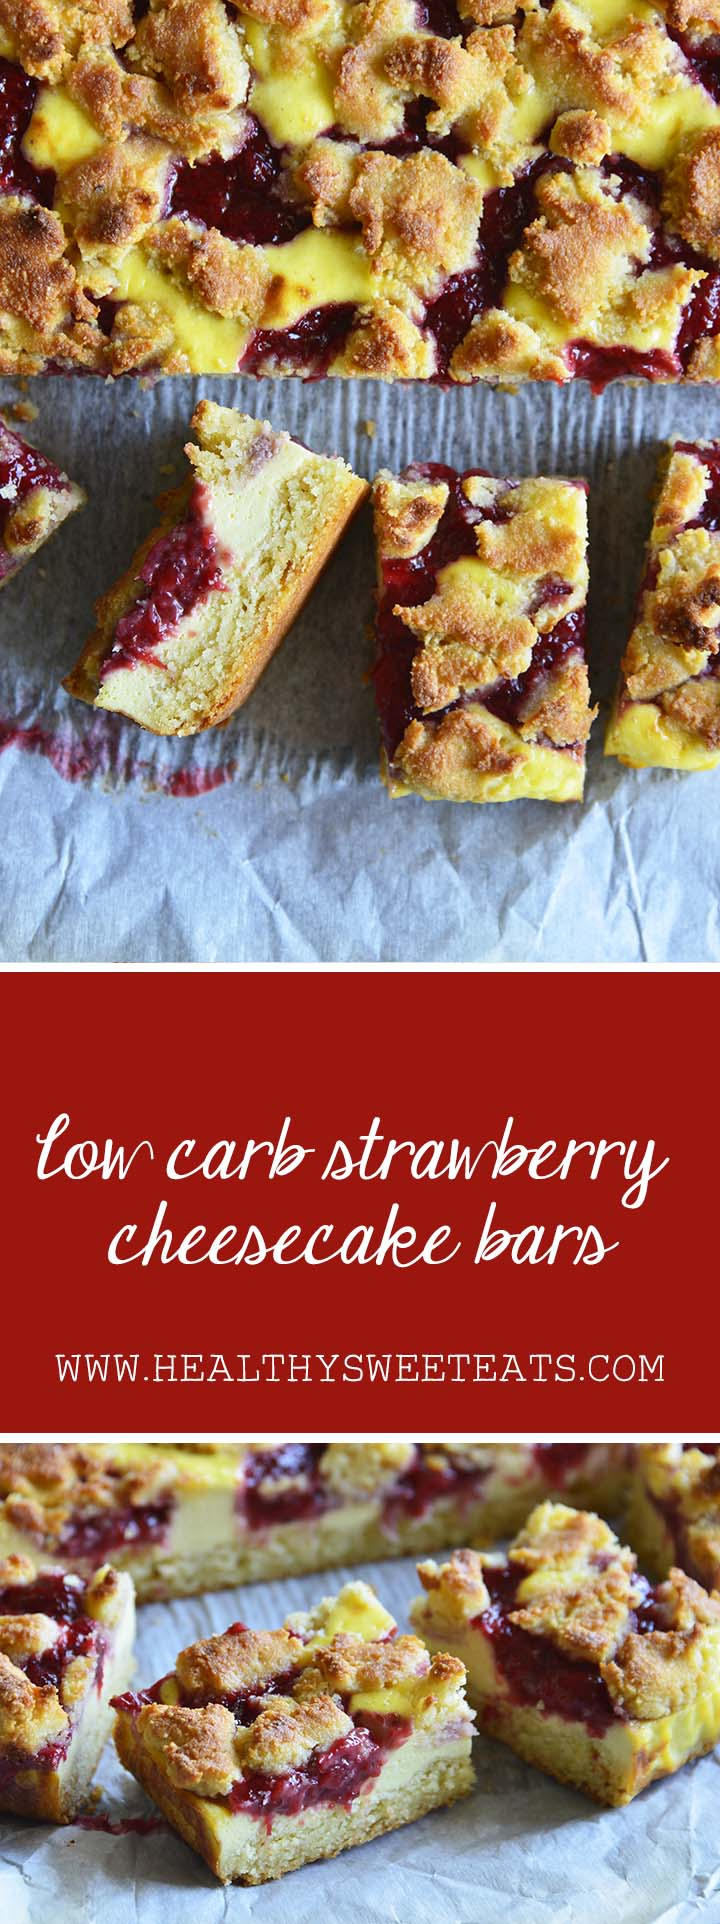 Low Carb Strawberry Cheesecake Bars Pin